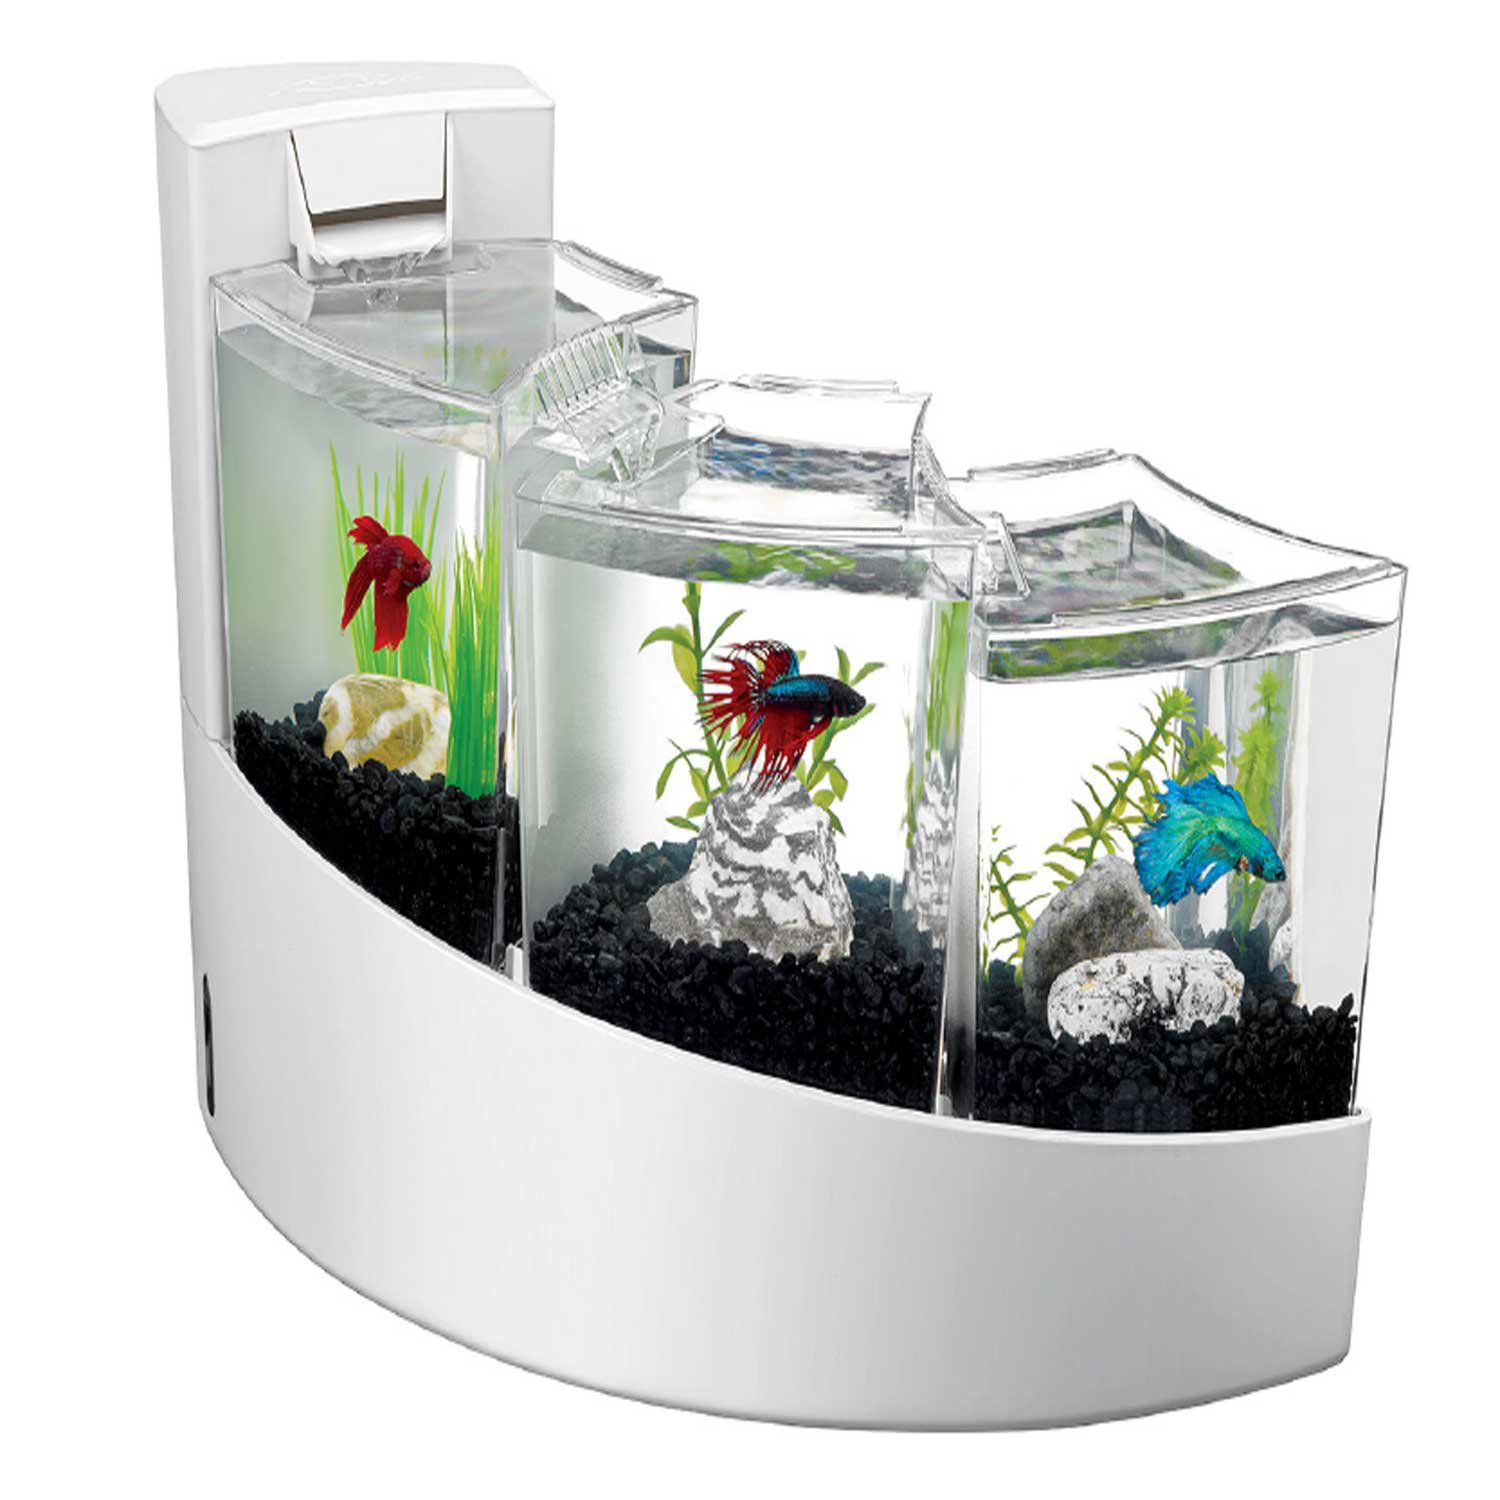 Aqueon betta falls aquarium kit in white fish aquariums for 2 gallon betta fish tank